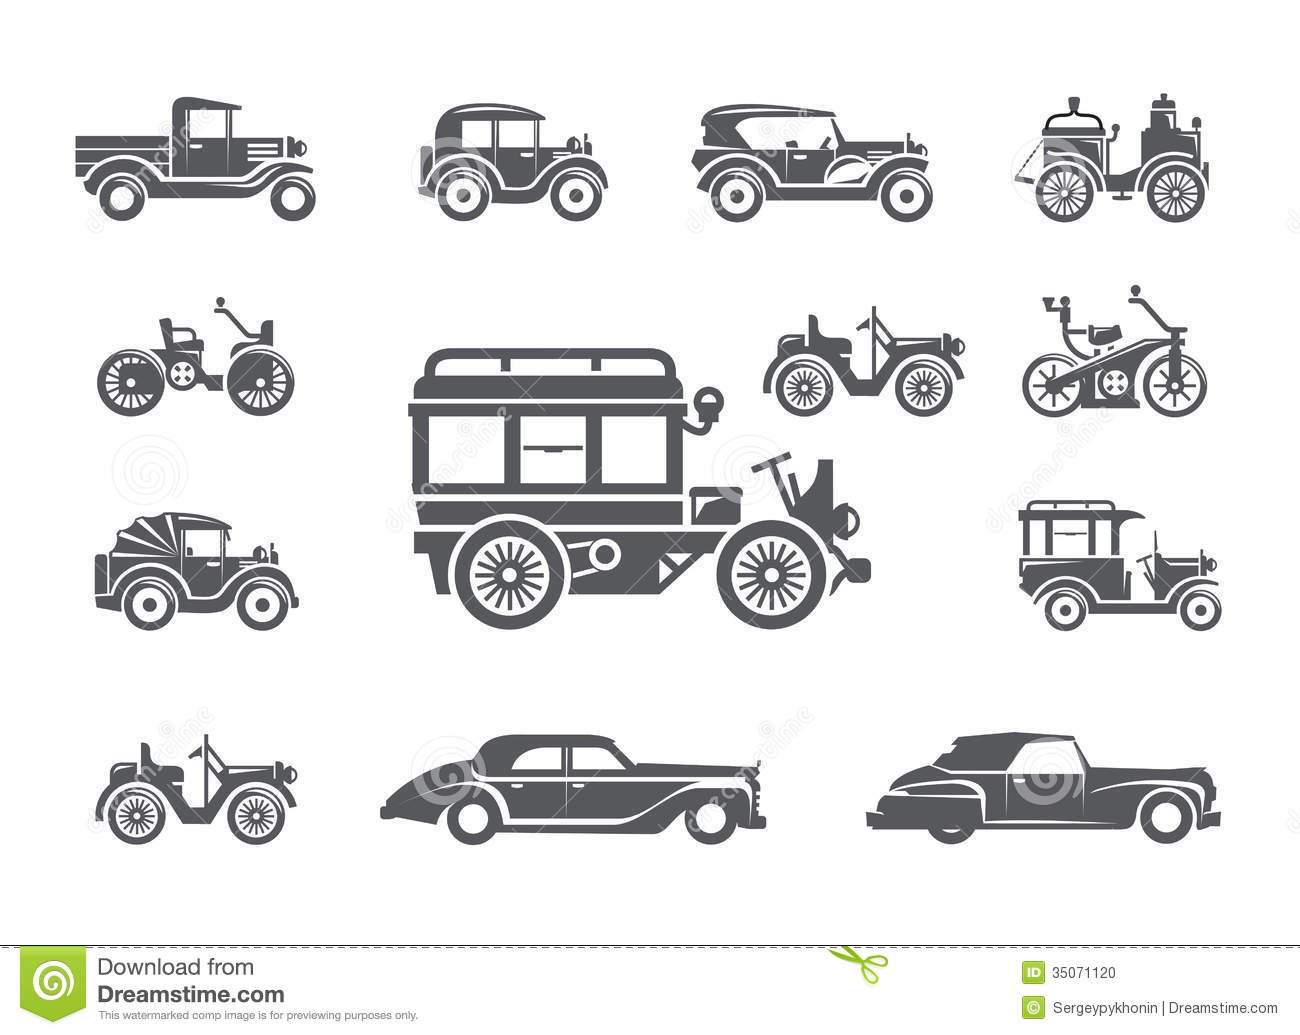 51 Custom Lowrider 5199787 further C er 20clipart 20vector in addition Western Star Trucks 75231 also Offroad Suv Auto Outline Vector Vehicle Gm656943462 119766145 as well 99060 Bus Black Icons. on vintage truck illustration